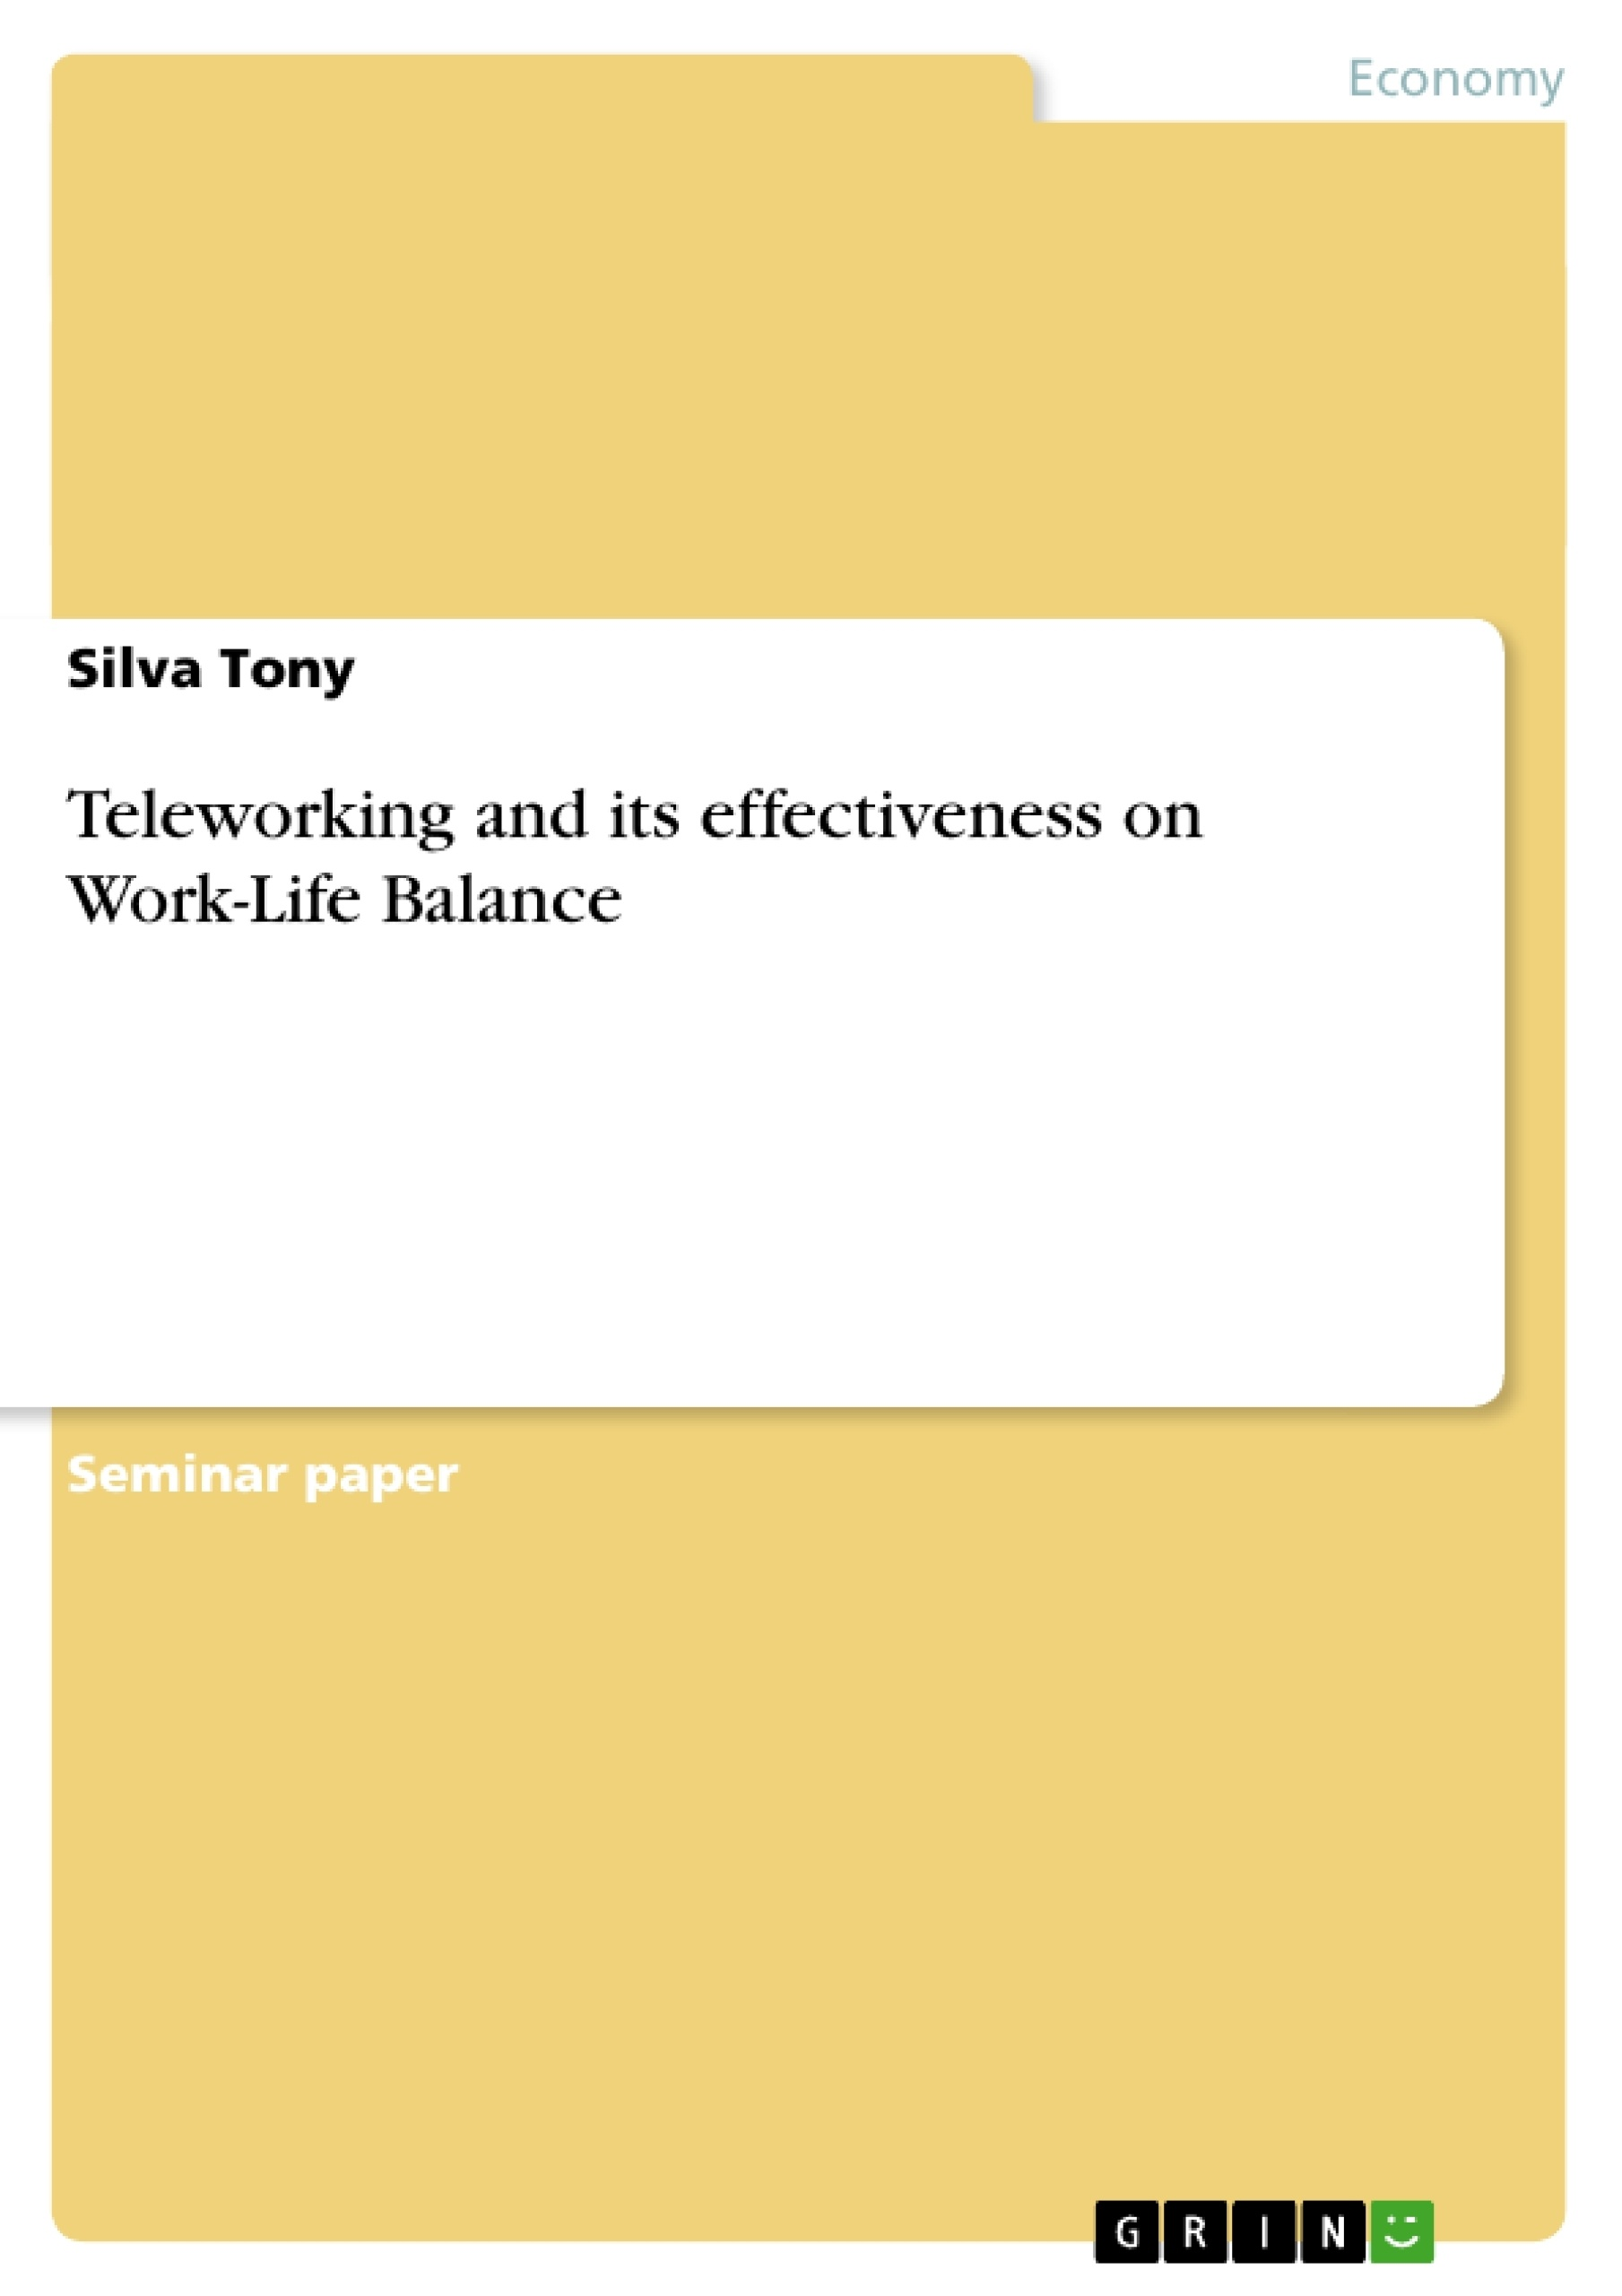 Title: Teleworking and its effectiveness on Work-Life Balance